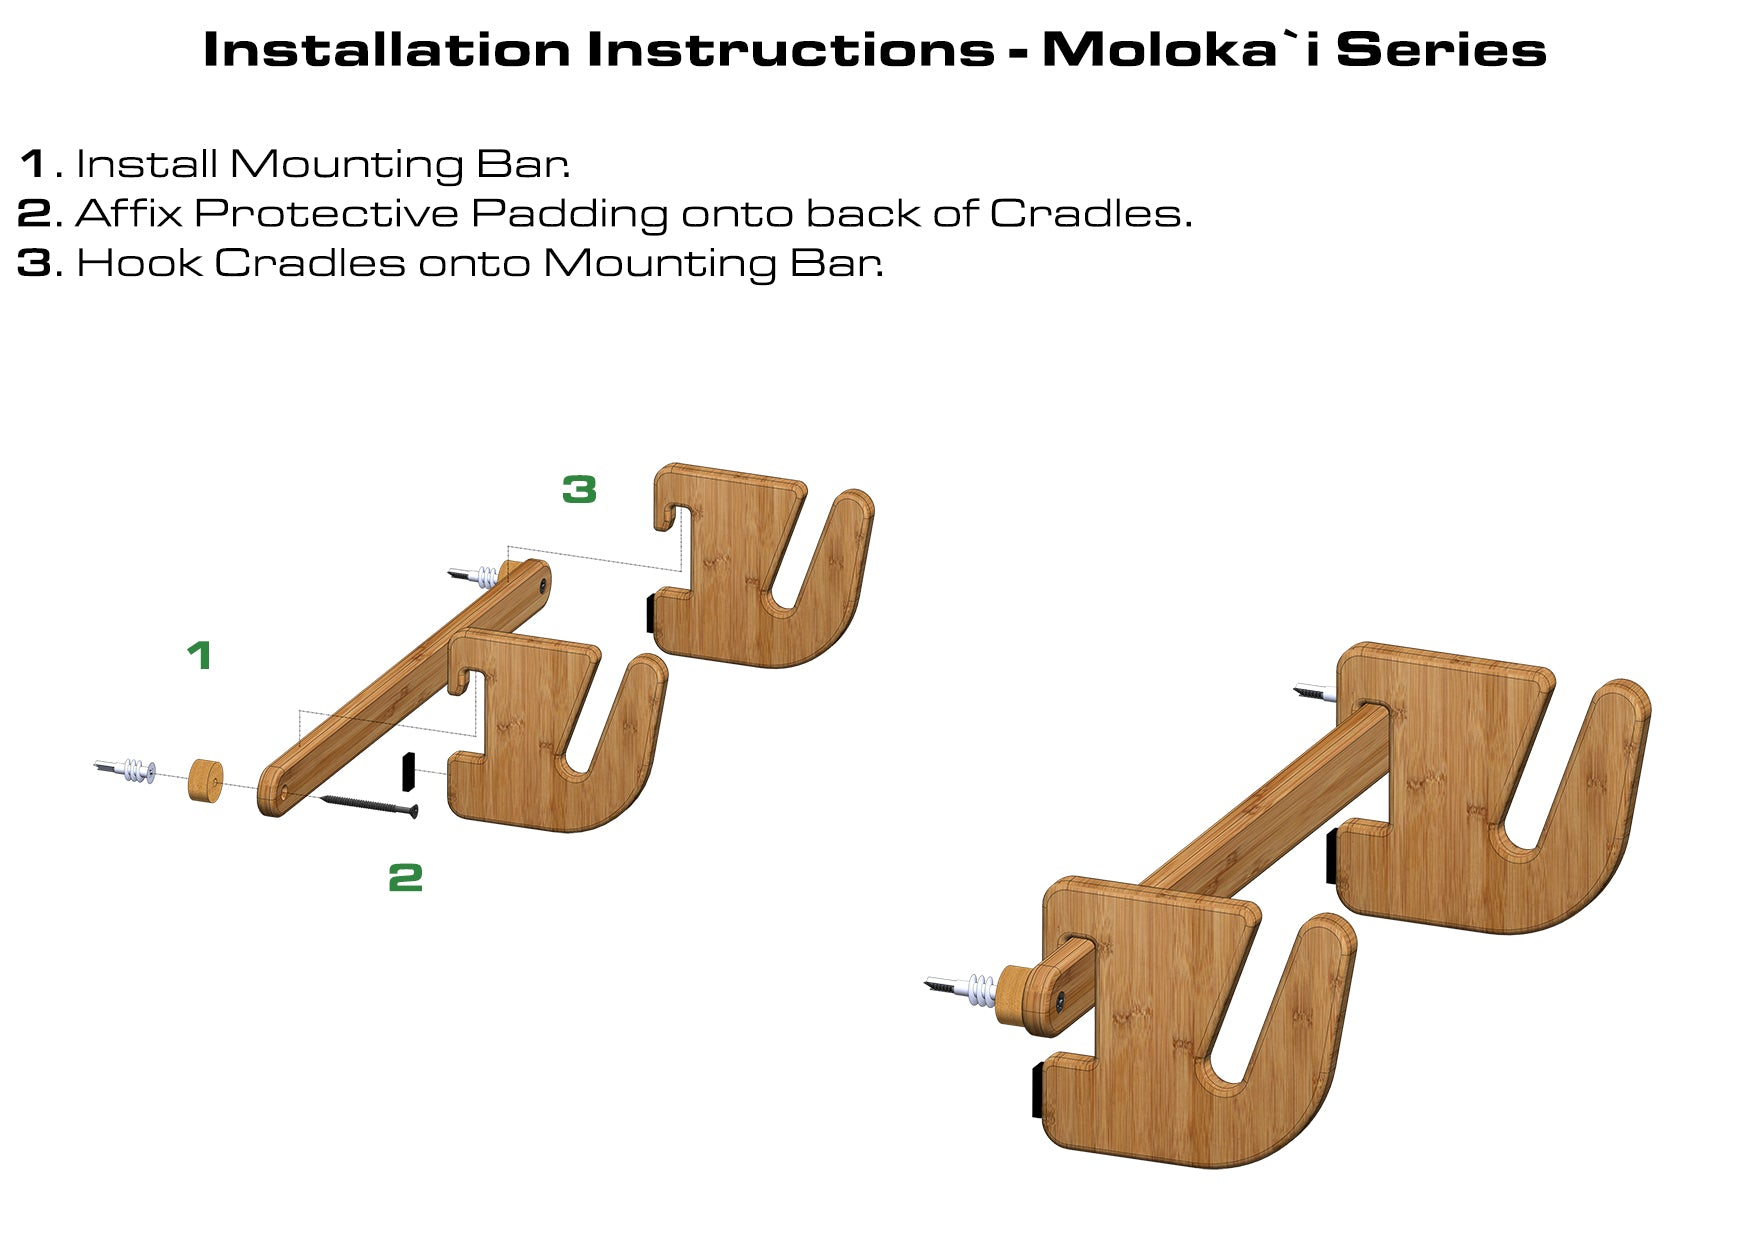 Skateboard Rack Installation Instructions - Bamboo Snowboard Rack by Grassracks